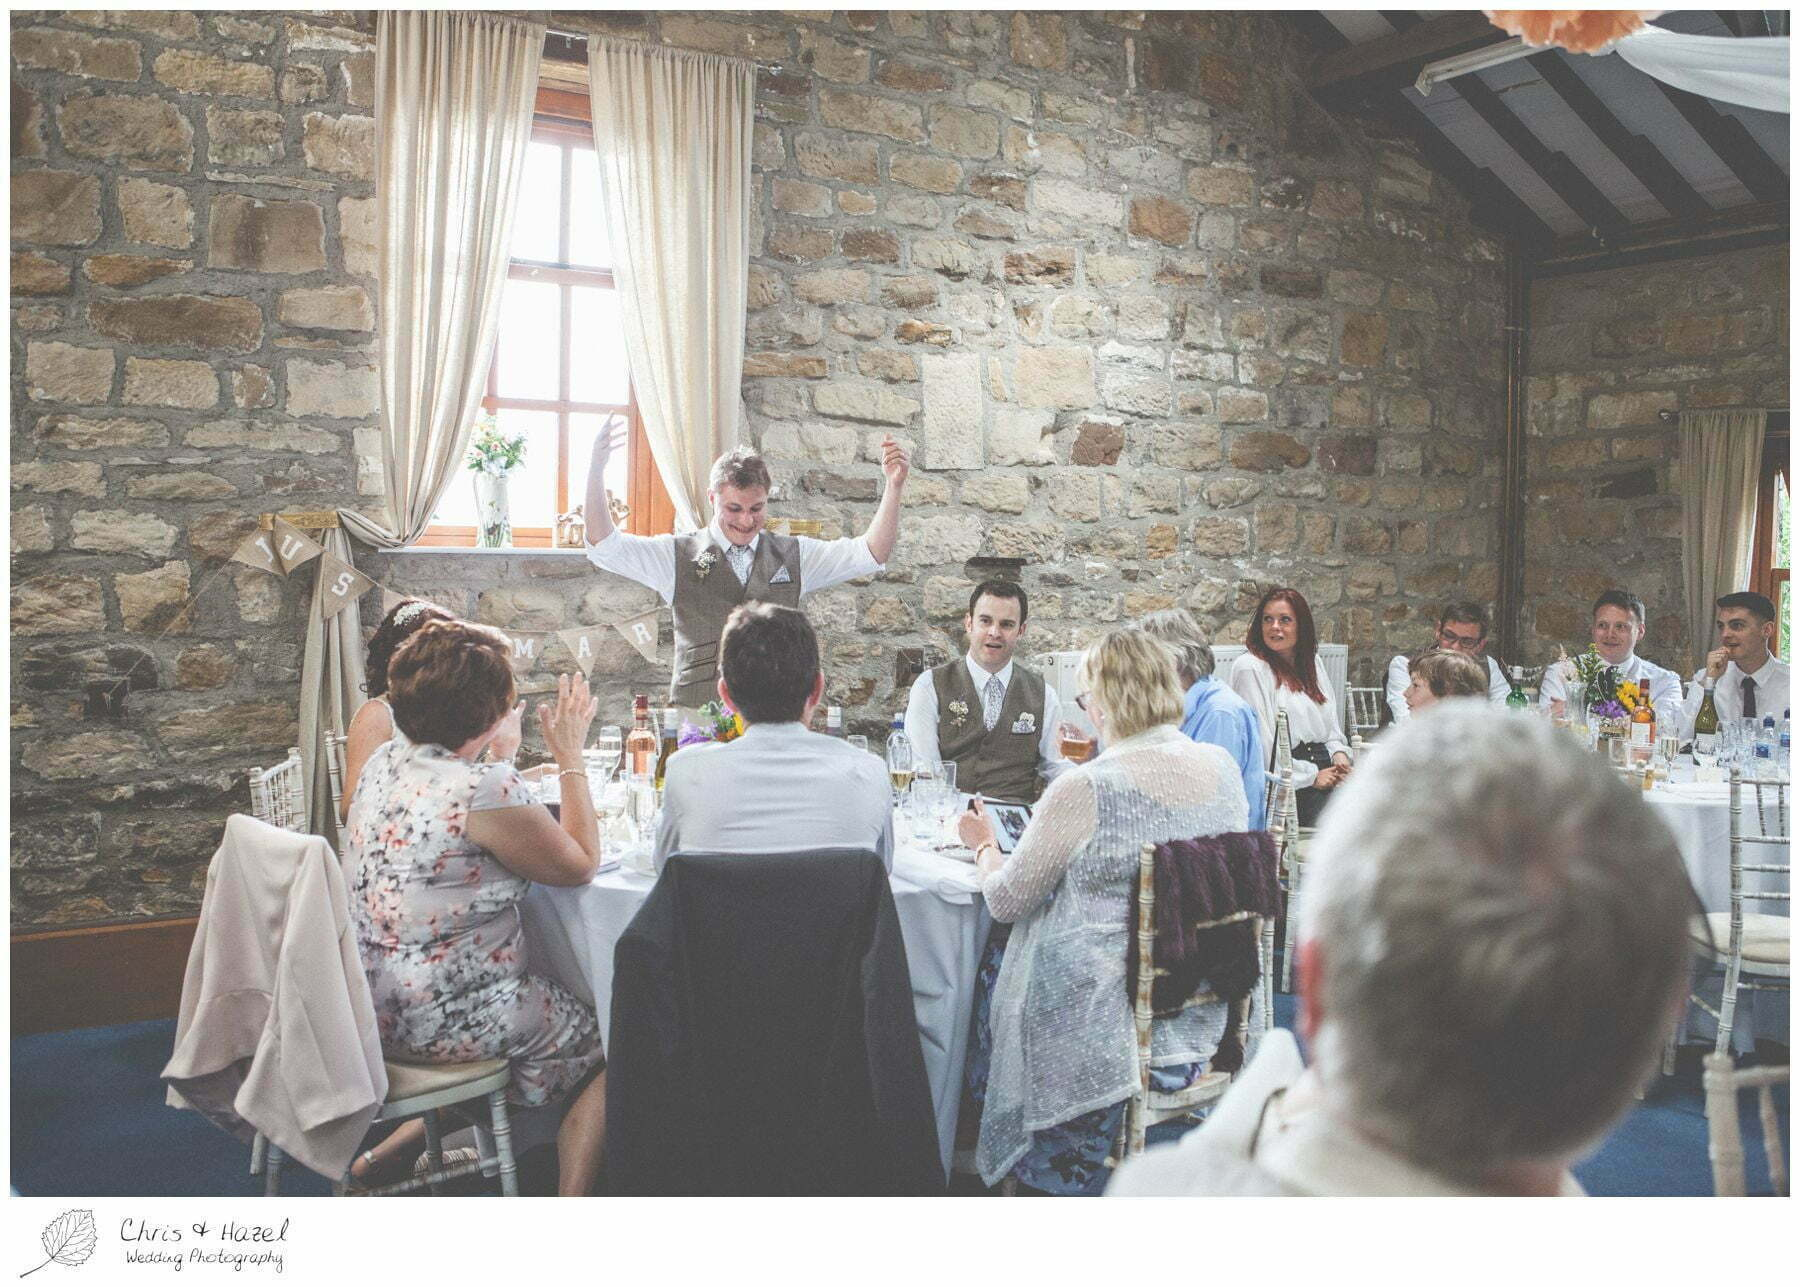 groom speech, wedding breakfast barn, wood wedding theme, eco wedding, love letters, wedding, Eccup Wedding Photographer, Lineham Farm, Wedding Photography Leeds, Chris and Hazel Wedding Photography, Richard Wyatt, Laura Kelly